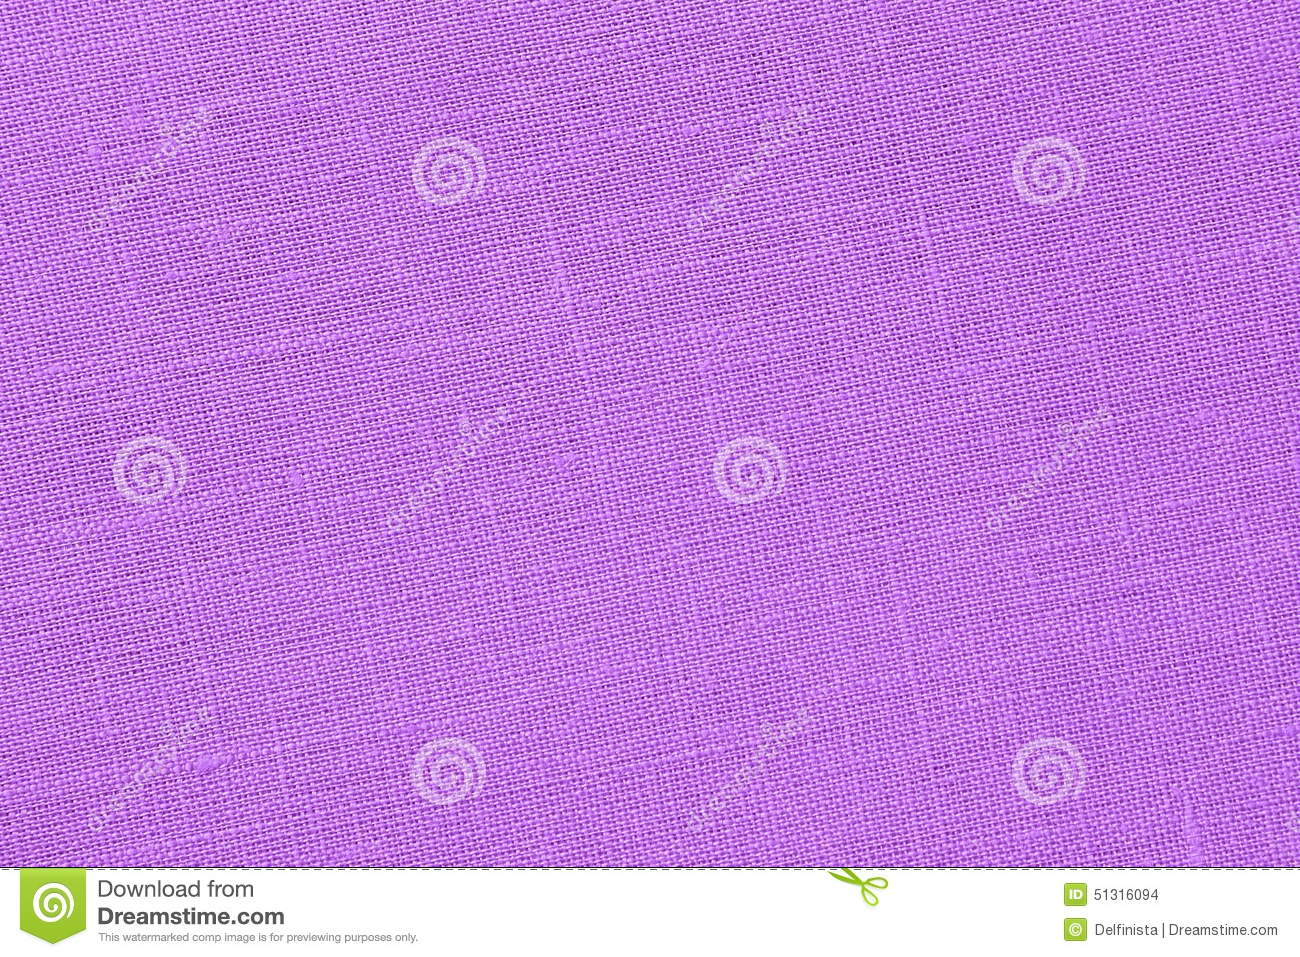 Download Pink Backround - Linen Canvas - Stock Photo Stock Photo - Image of canvas, backdrops: 51316094